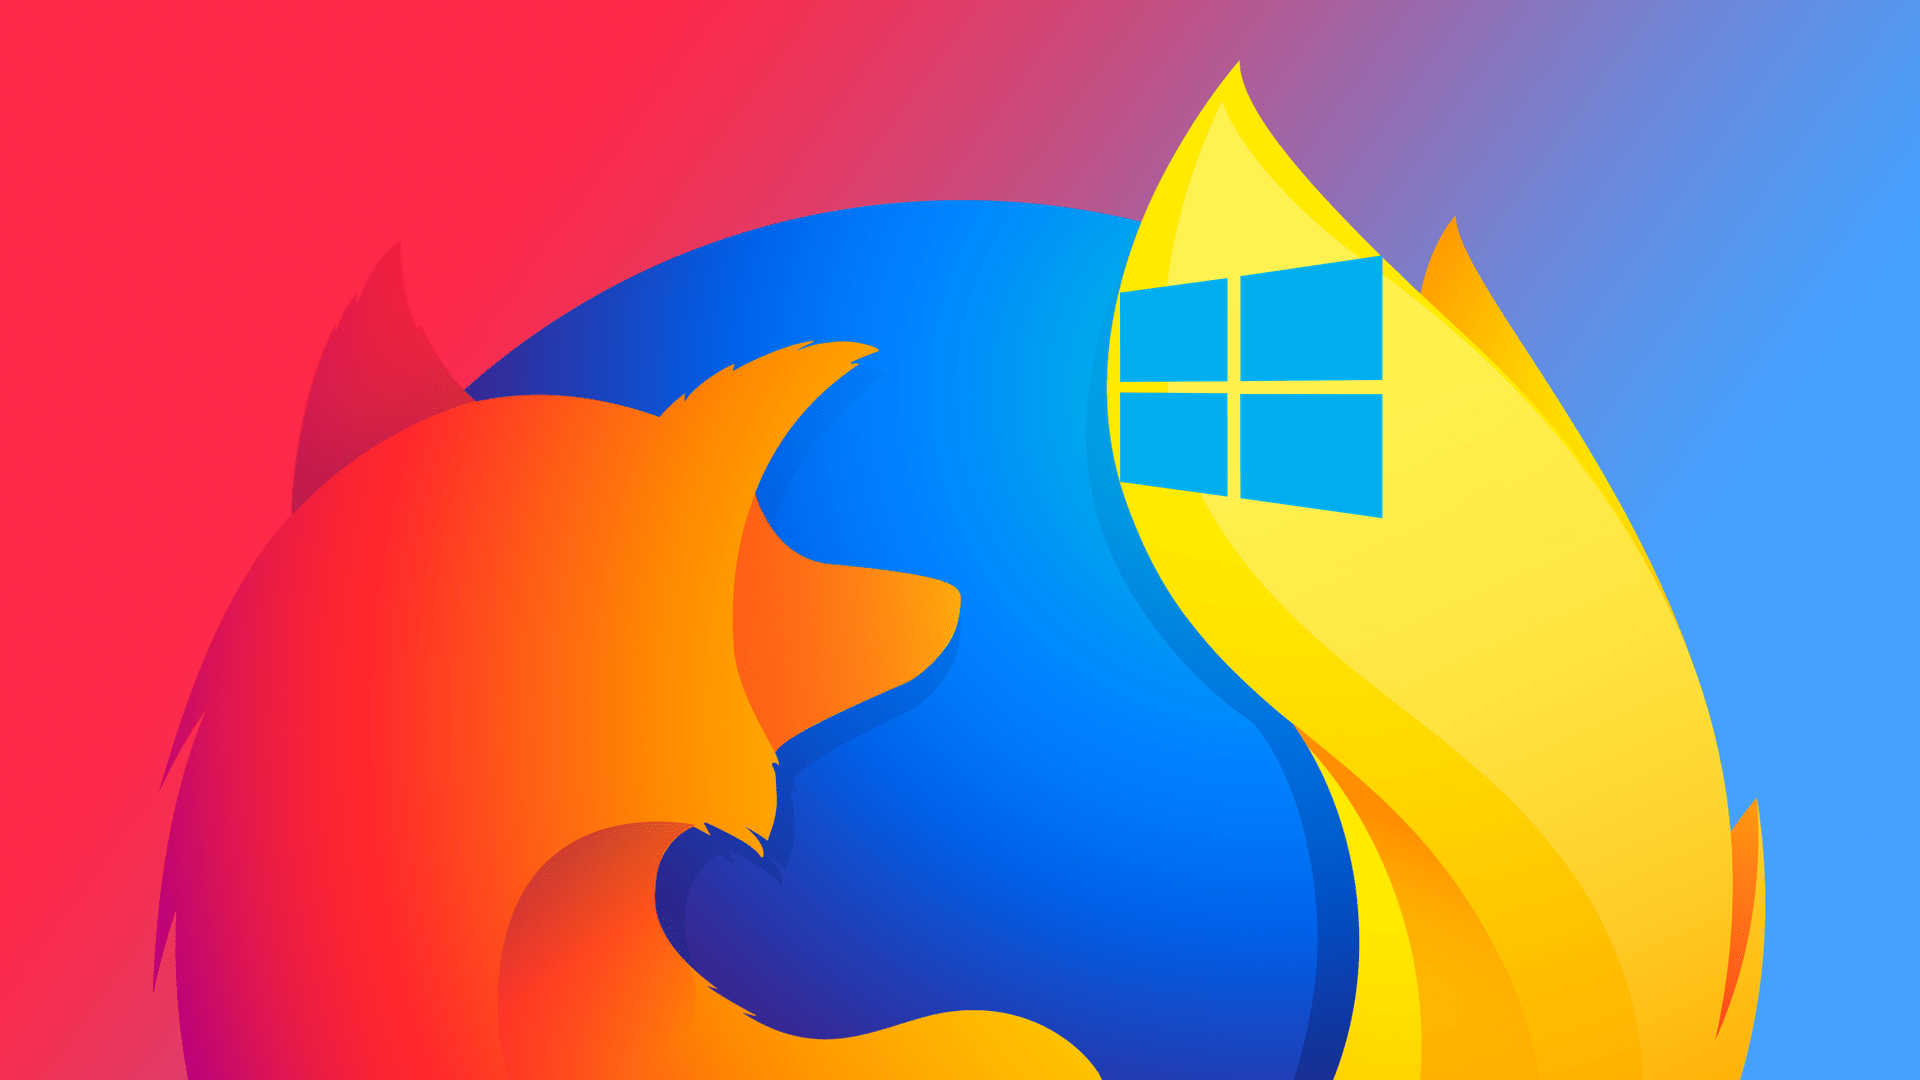 Iniciados os testes do Firefox otimizado para o Windows 10 ARM